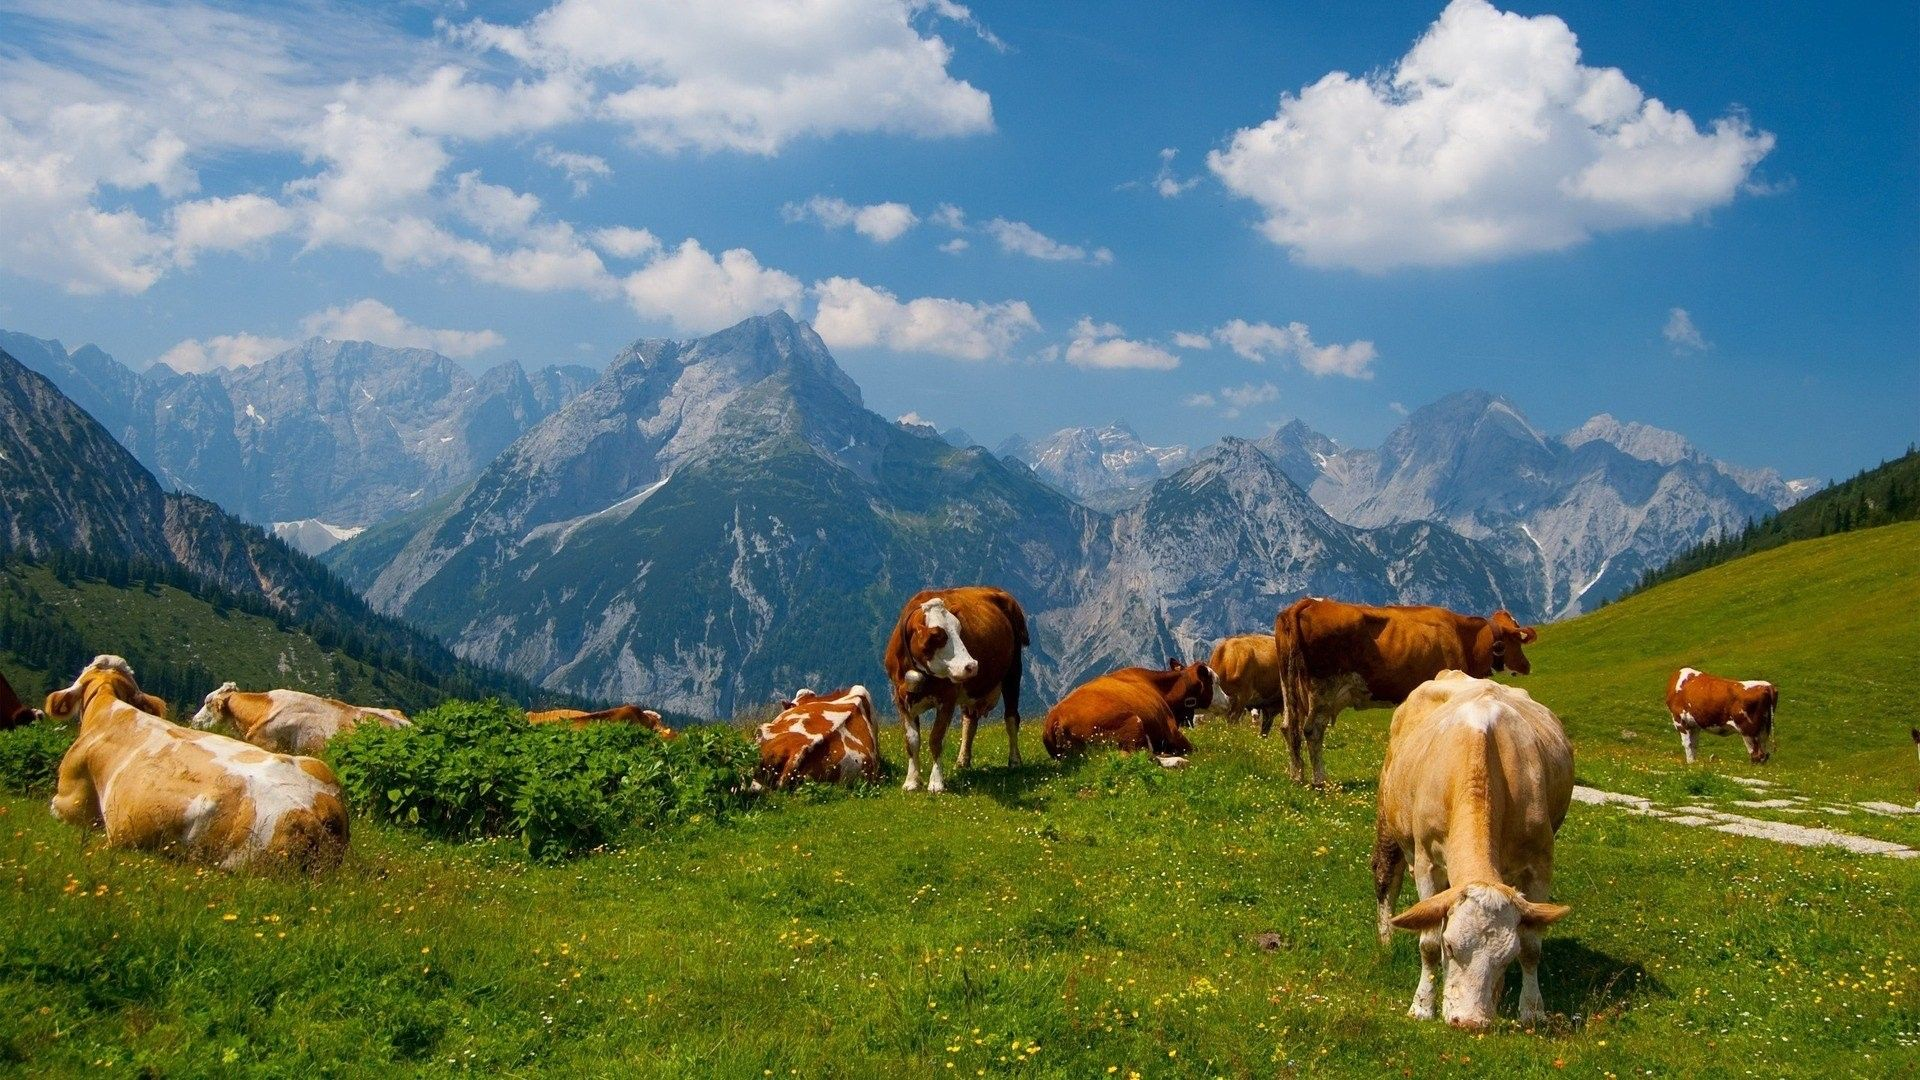 pictures of cows